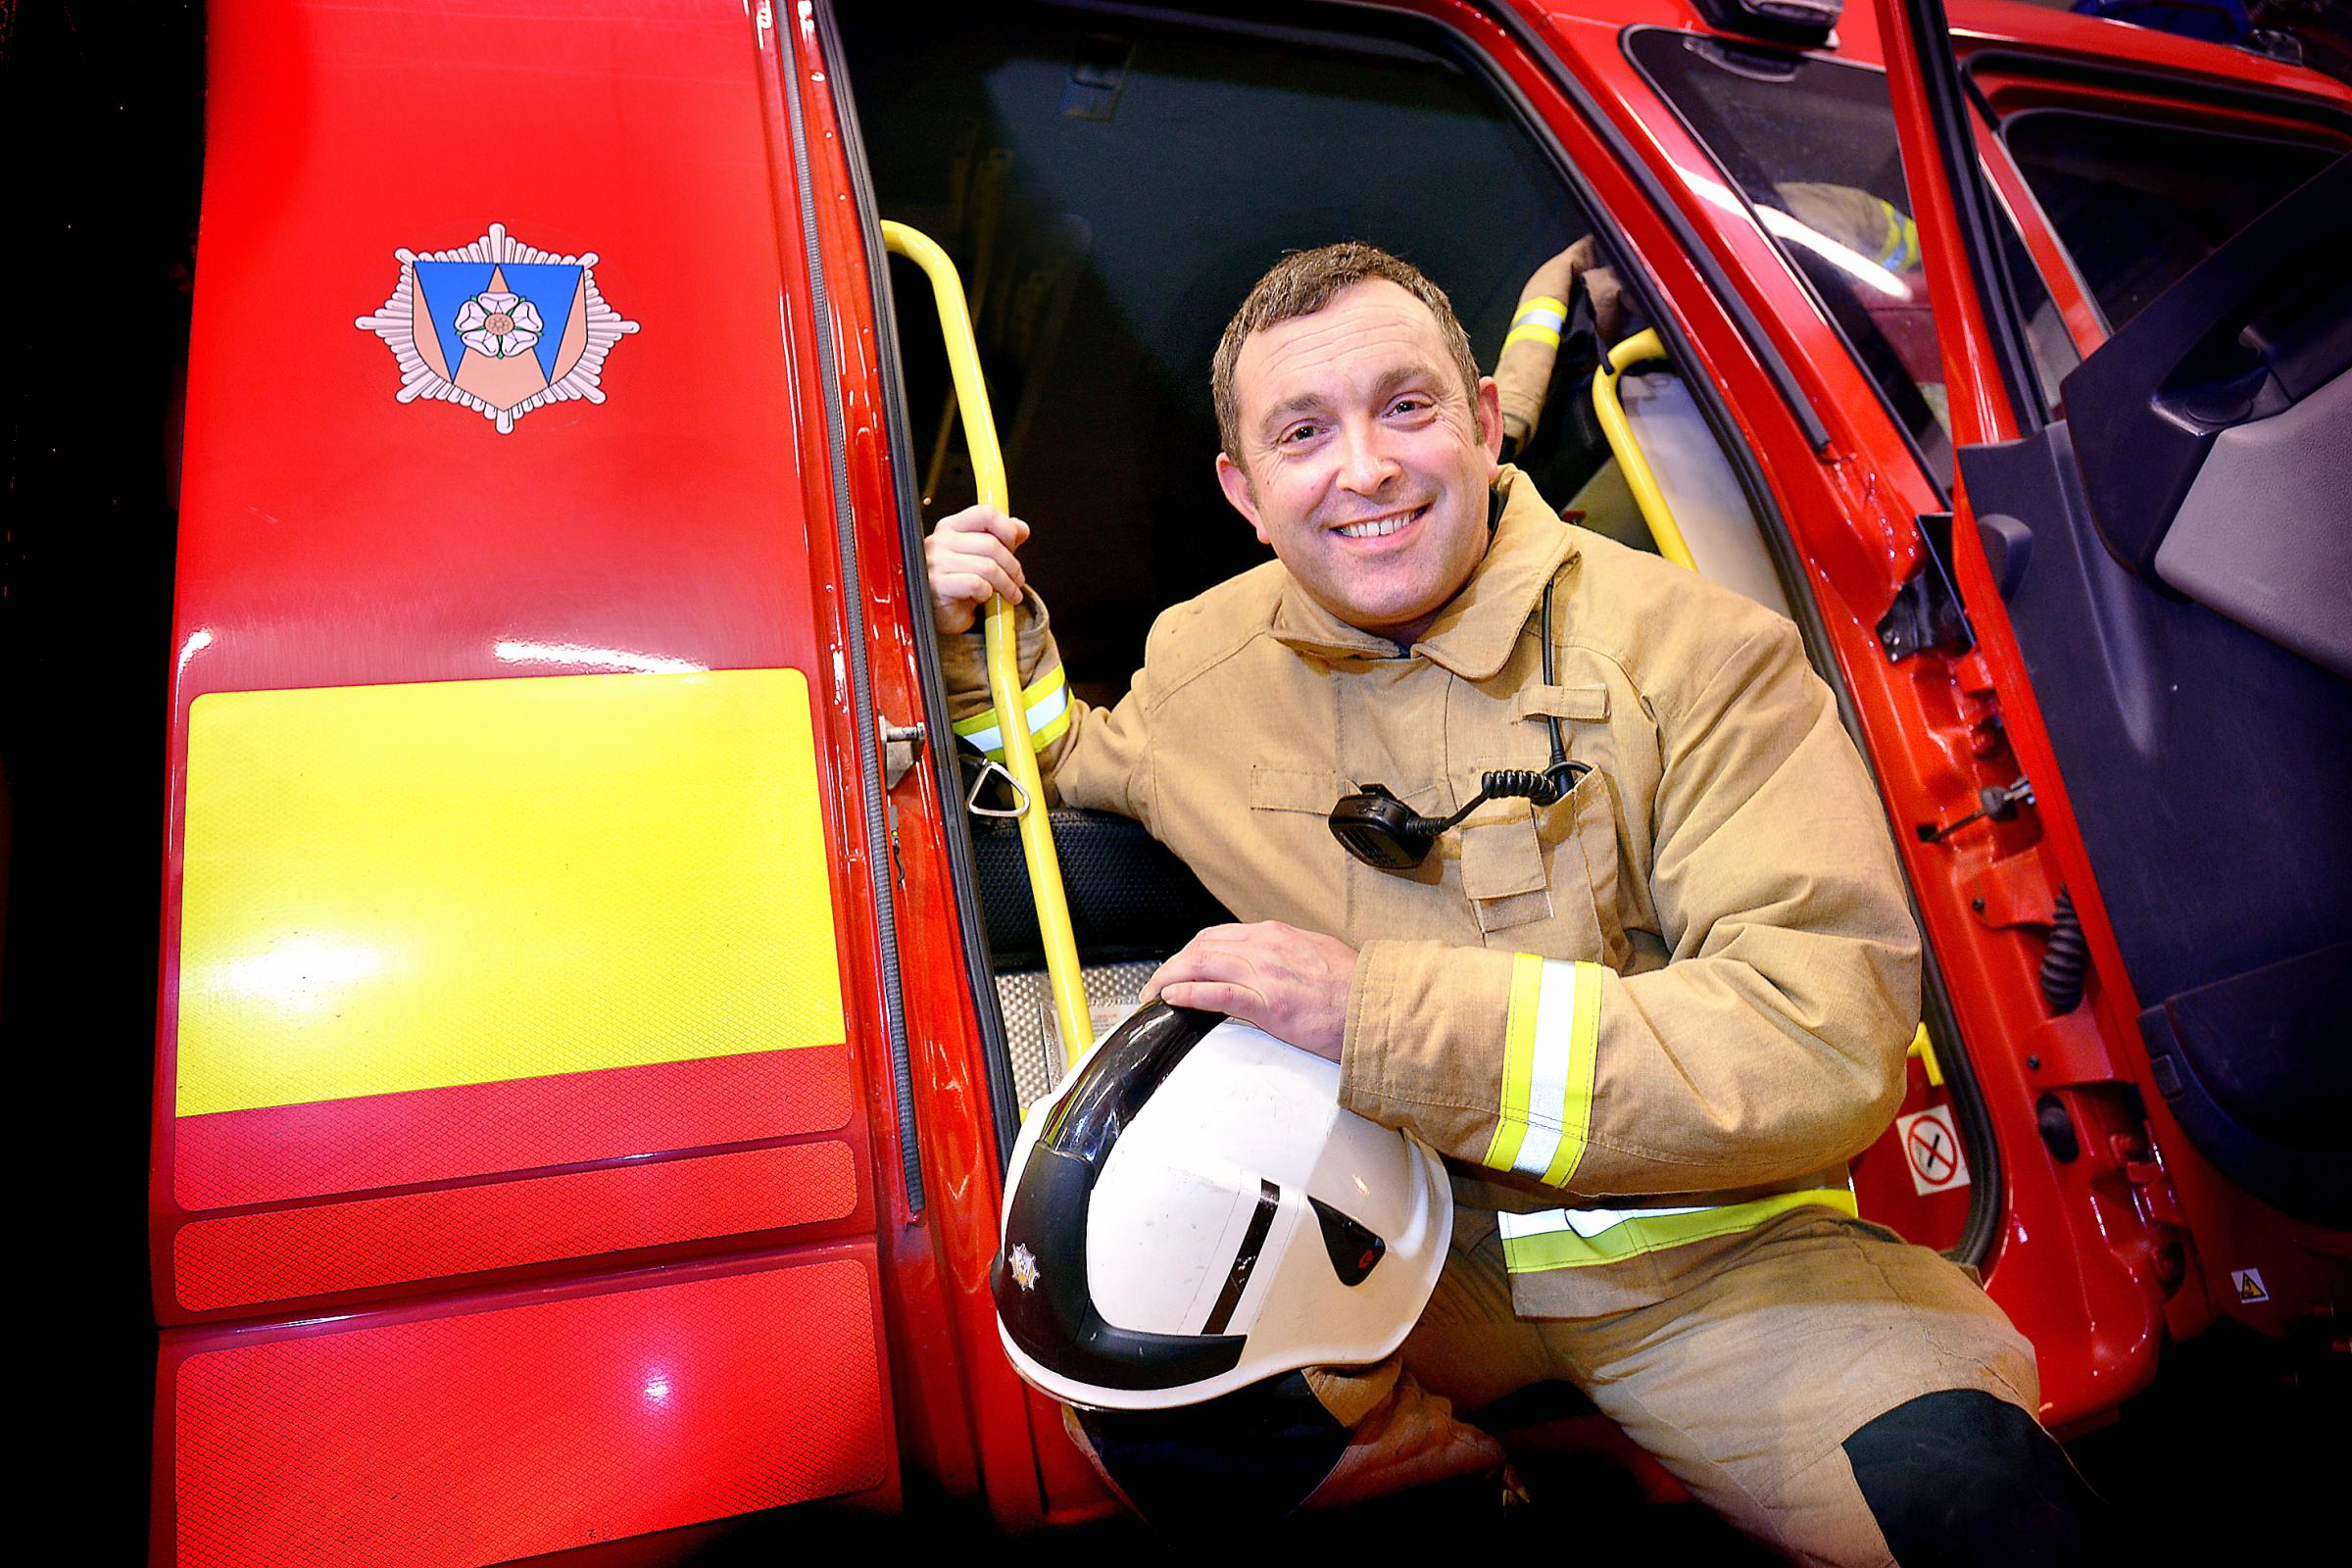 Firefighter Mick Titmarsh has been shortlisted for an award